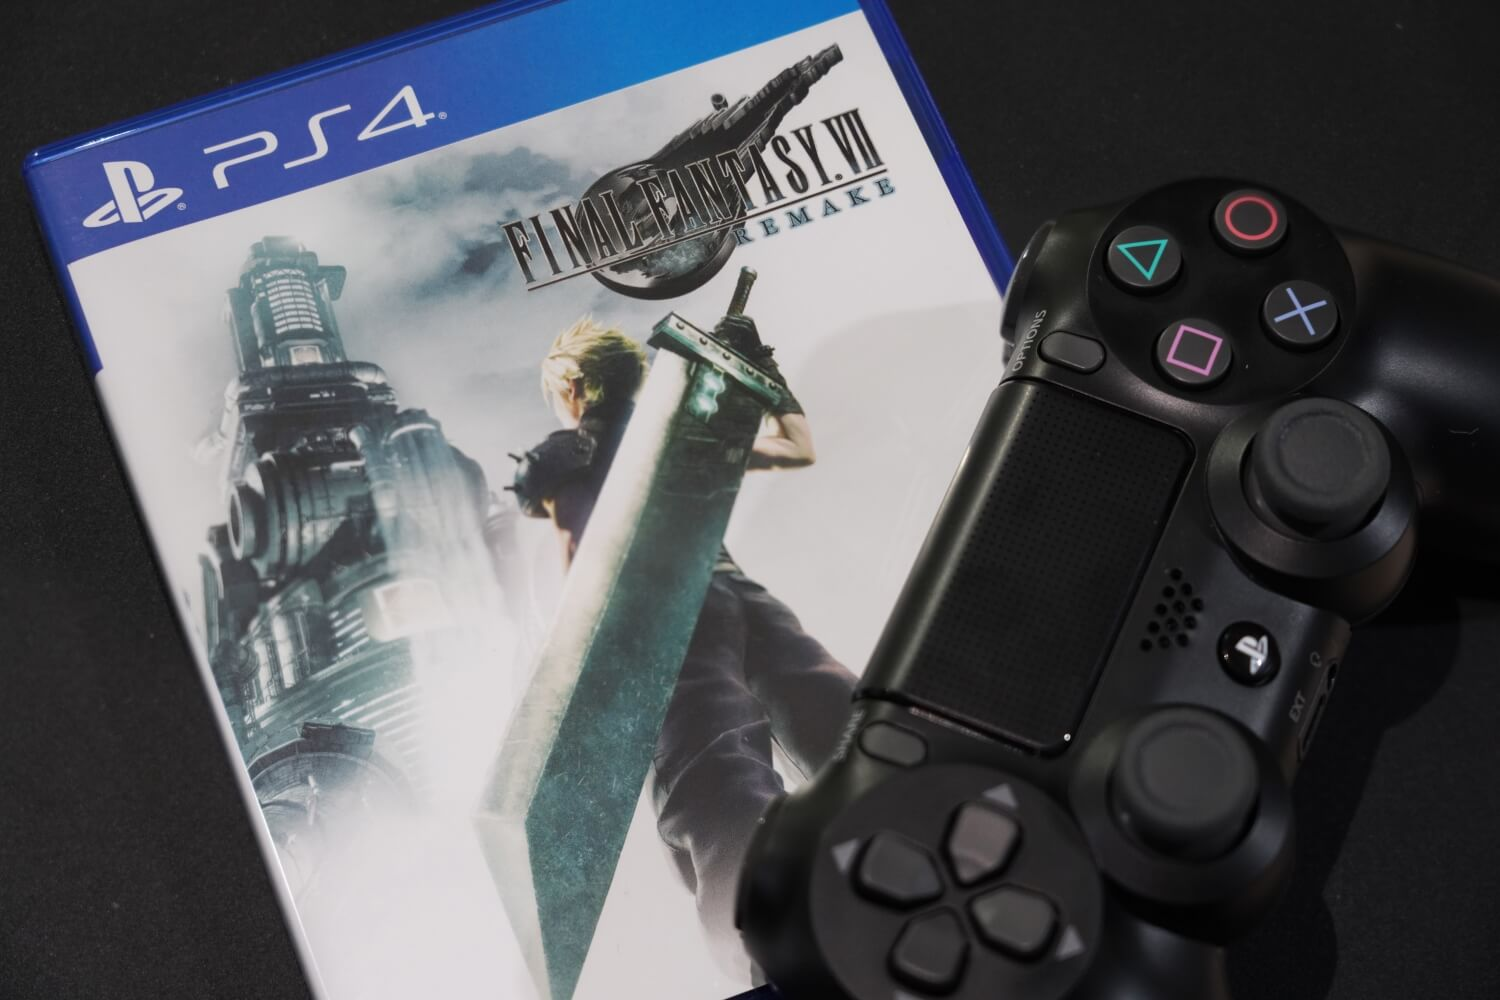 Final Fantasy VII Remake led record-setting month for video games